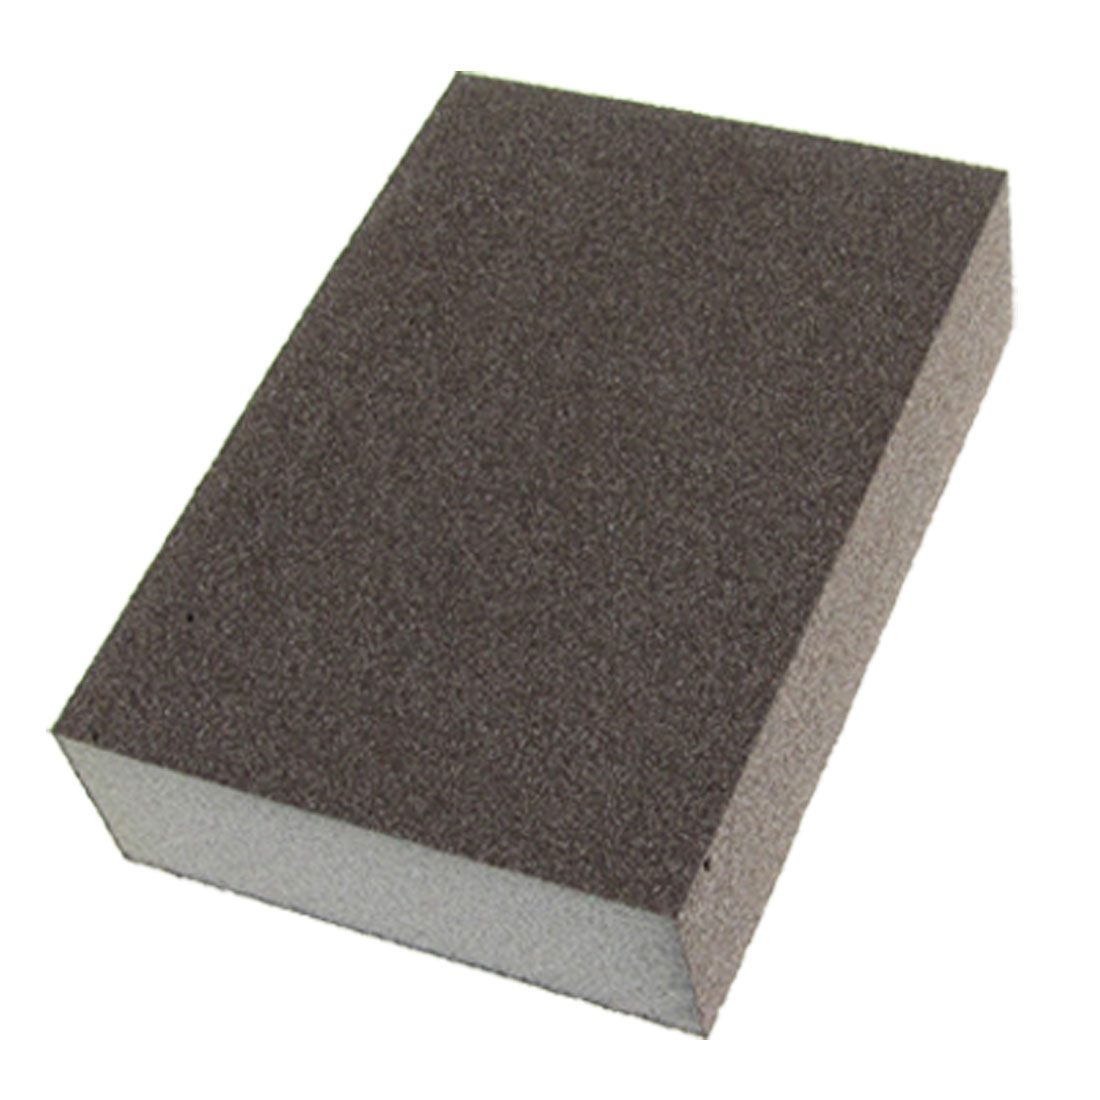 Rectangular Medium 120 Grit Sanding Sponge Block 100mm x 70mm x 25mm